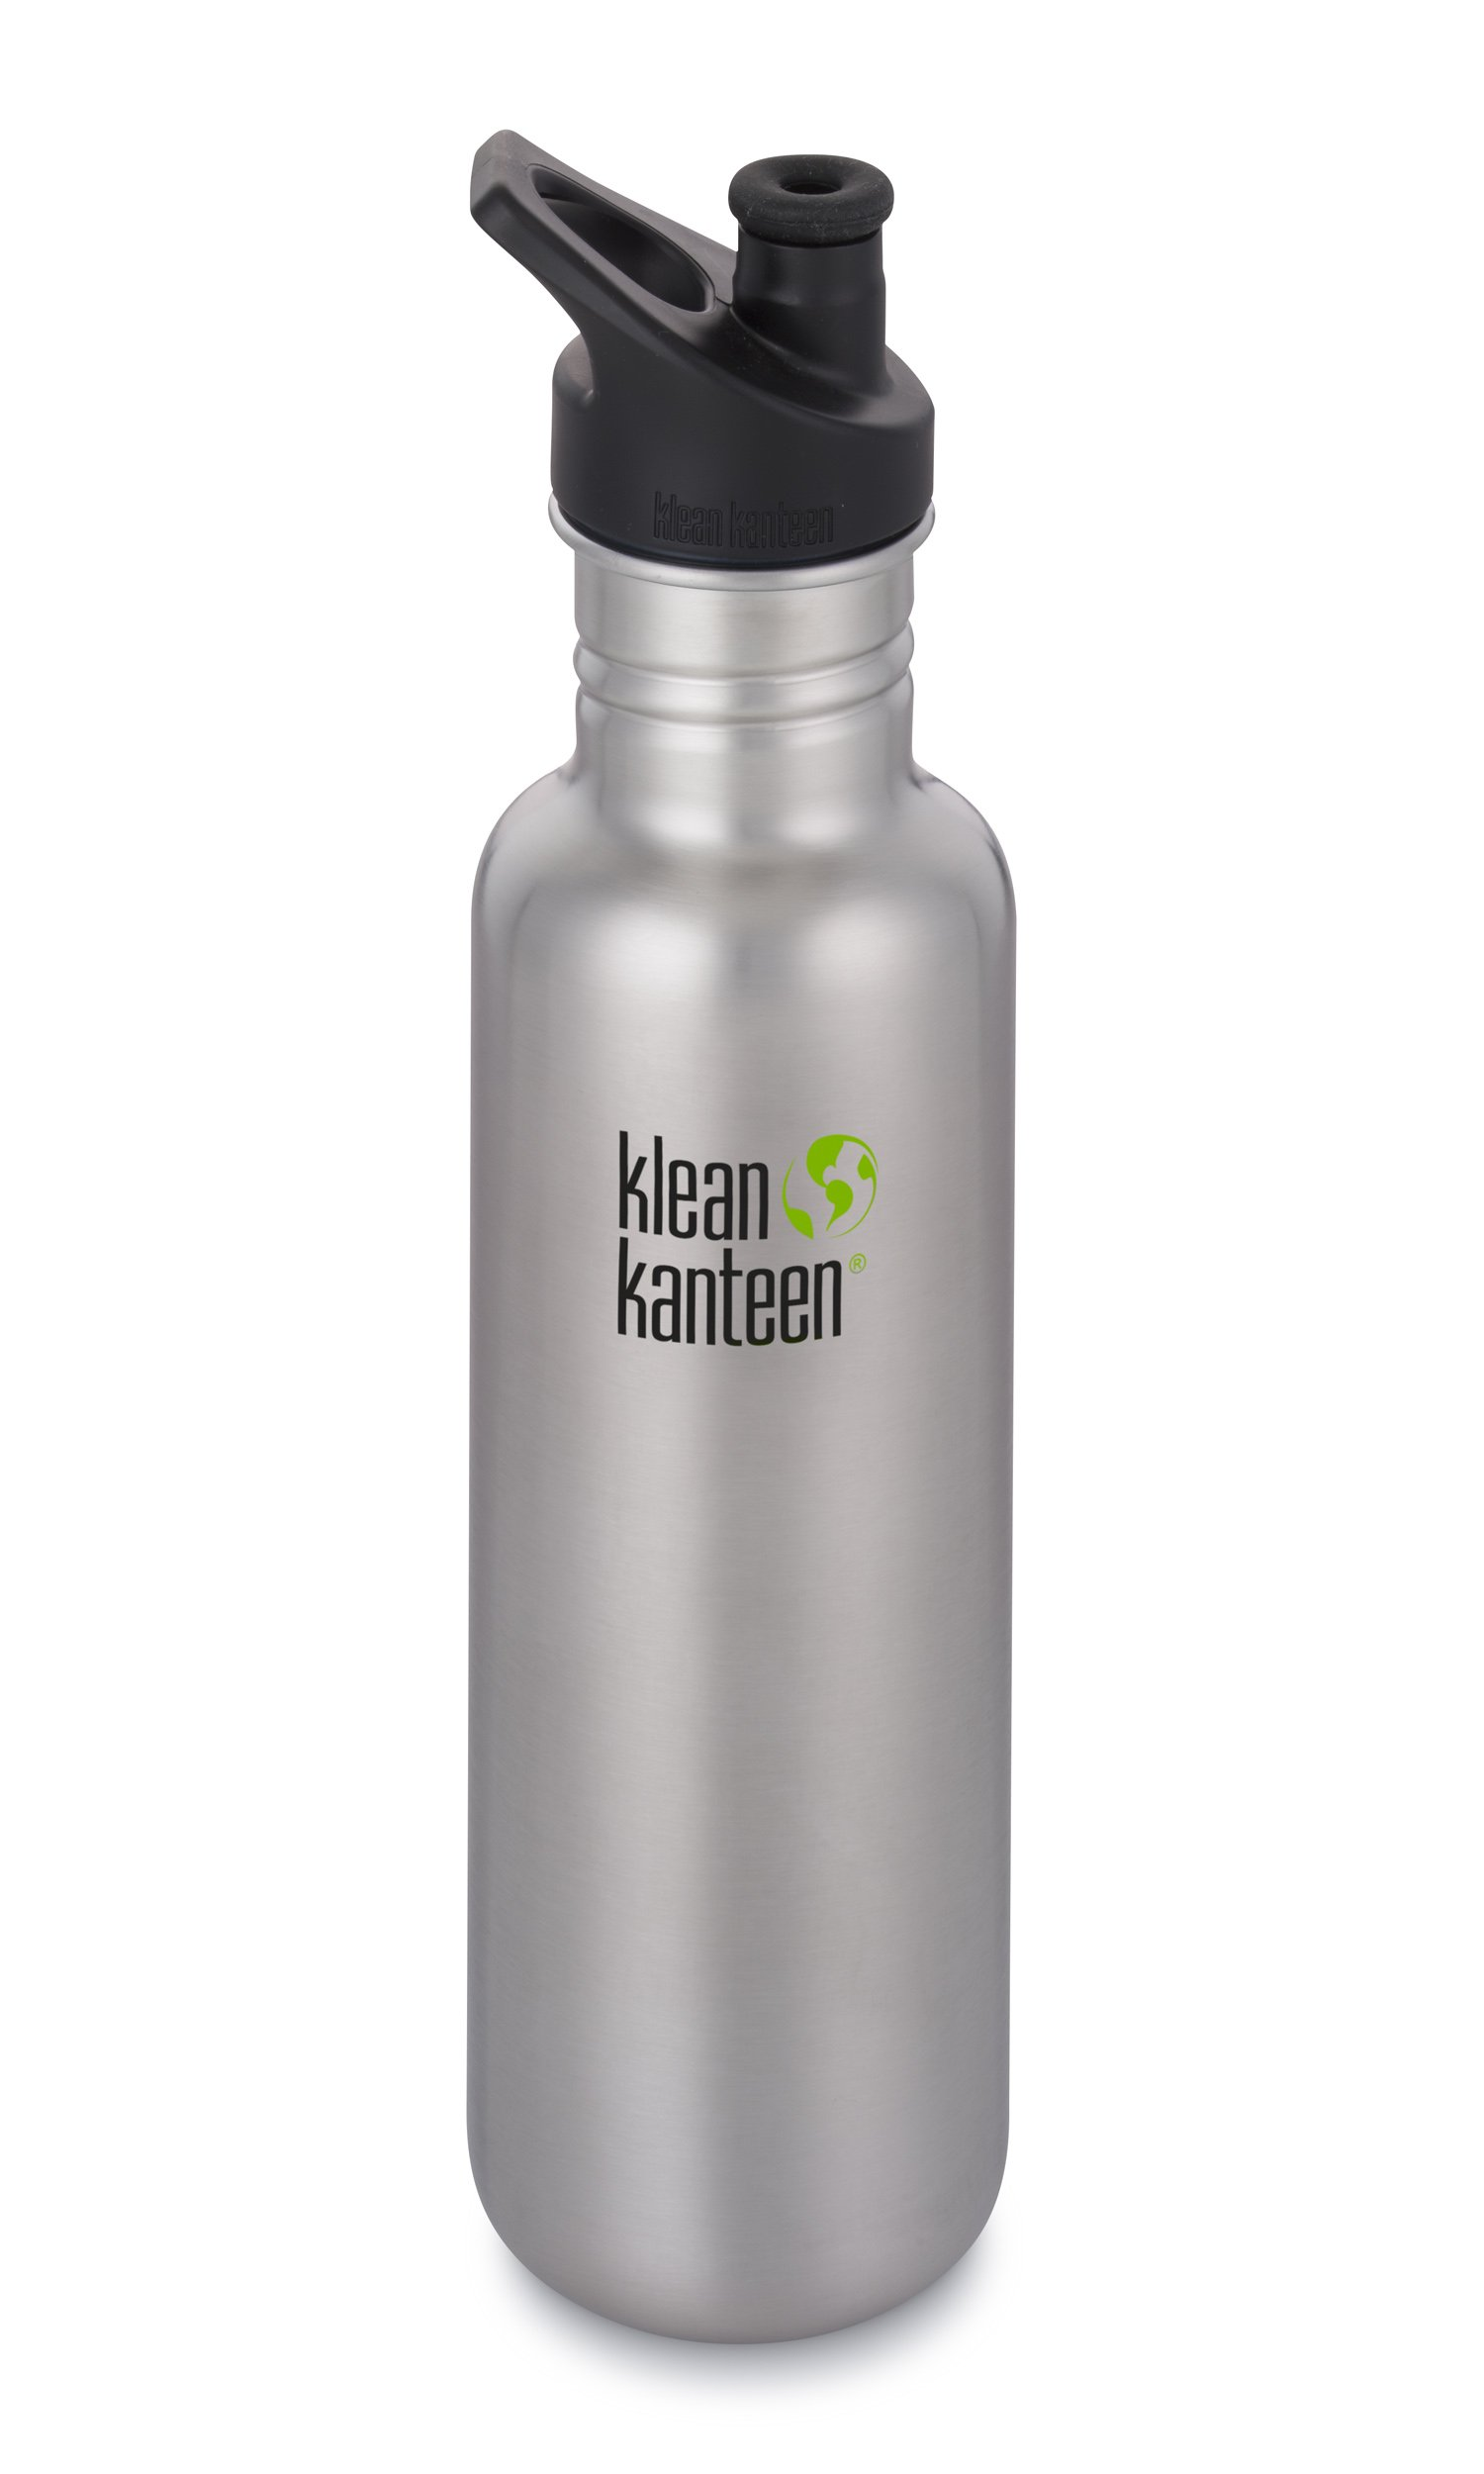 Klean Kanteen Classic Stainless Steel Single Wall Non-Insulated Water Bottle with Sport Cap, 27-Ounce, Brushed Stainless by Klean Kanteen